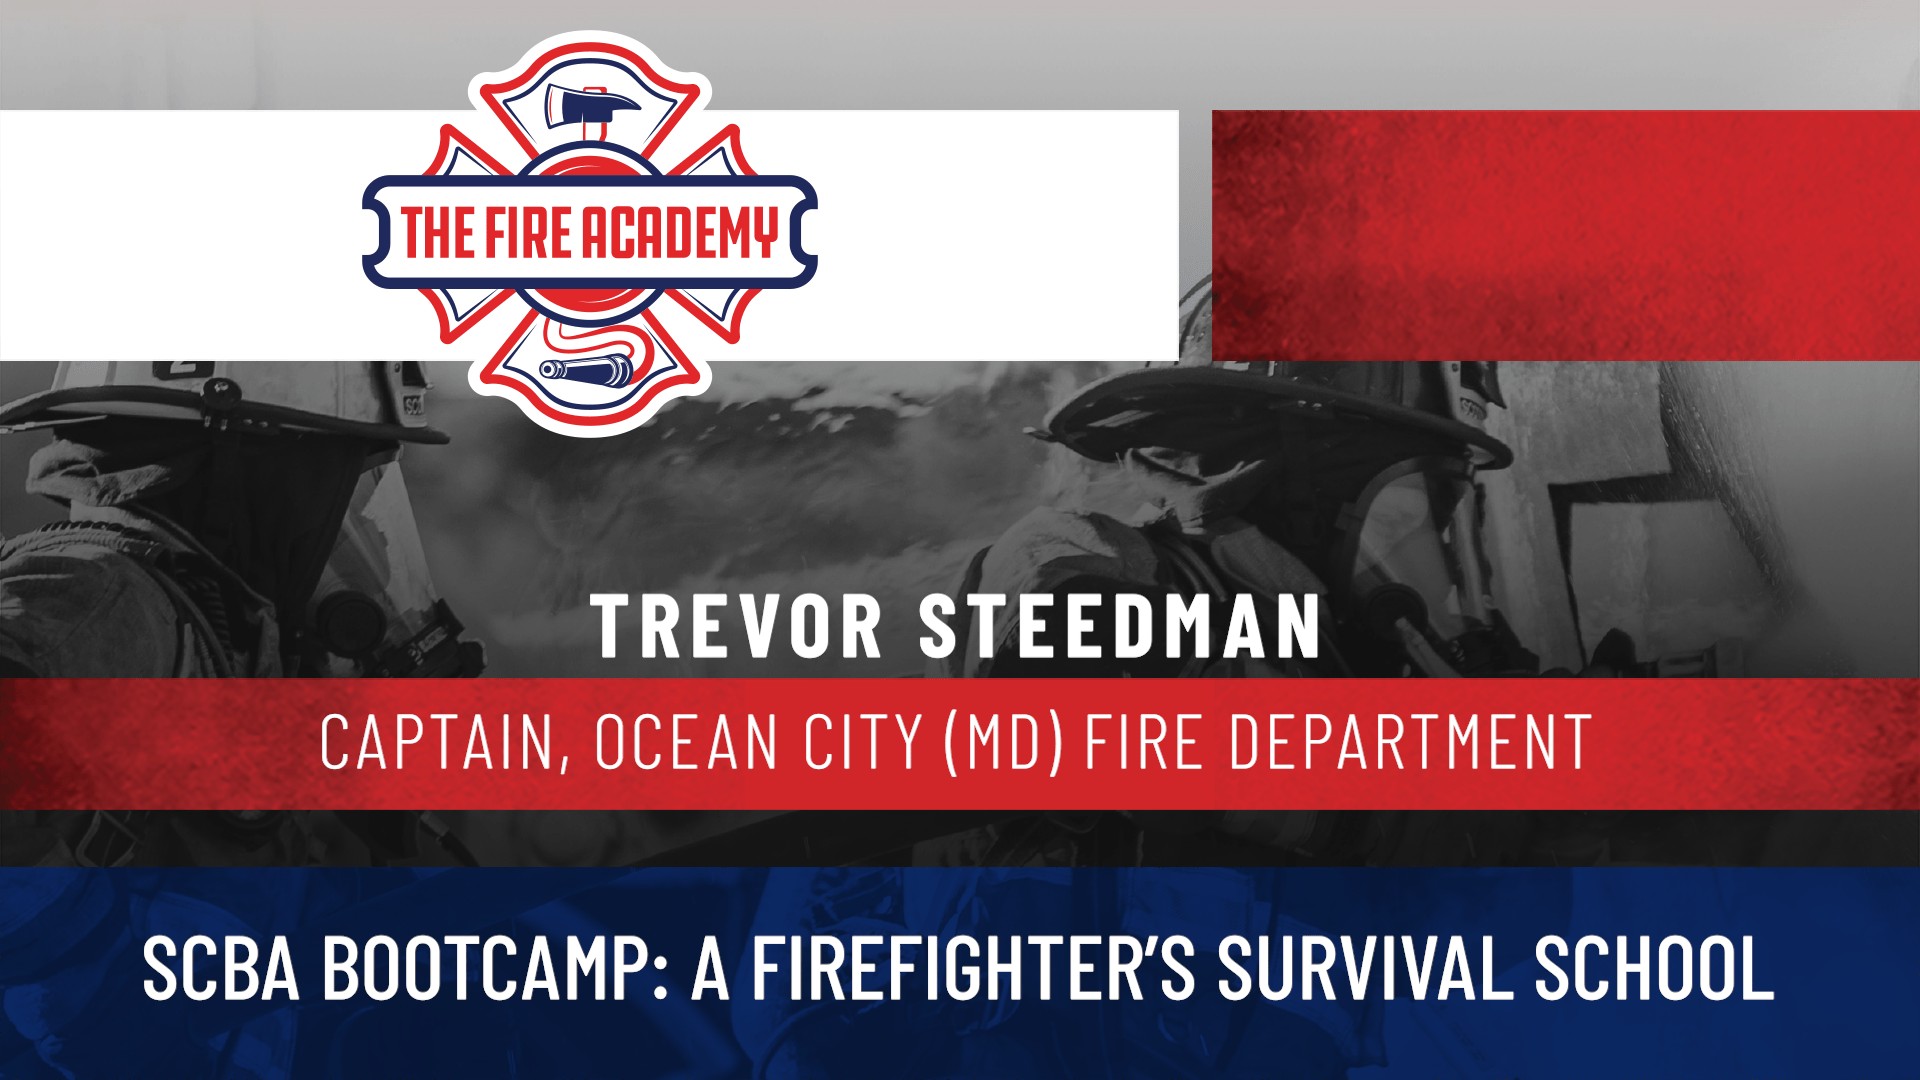 SCBA Bootcamp: A Firefighter's Survival School